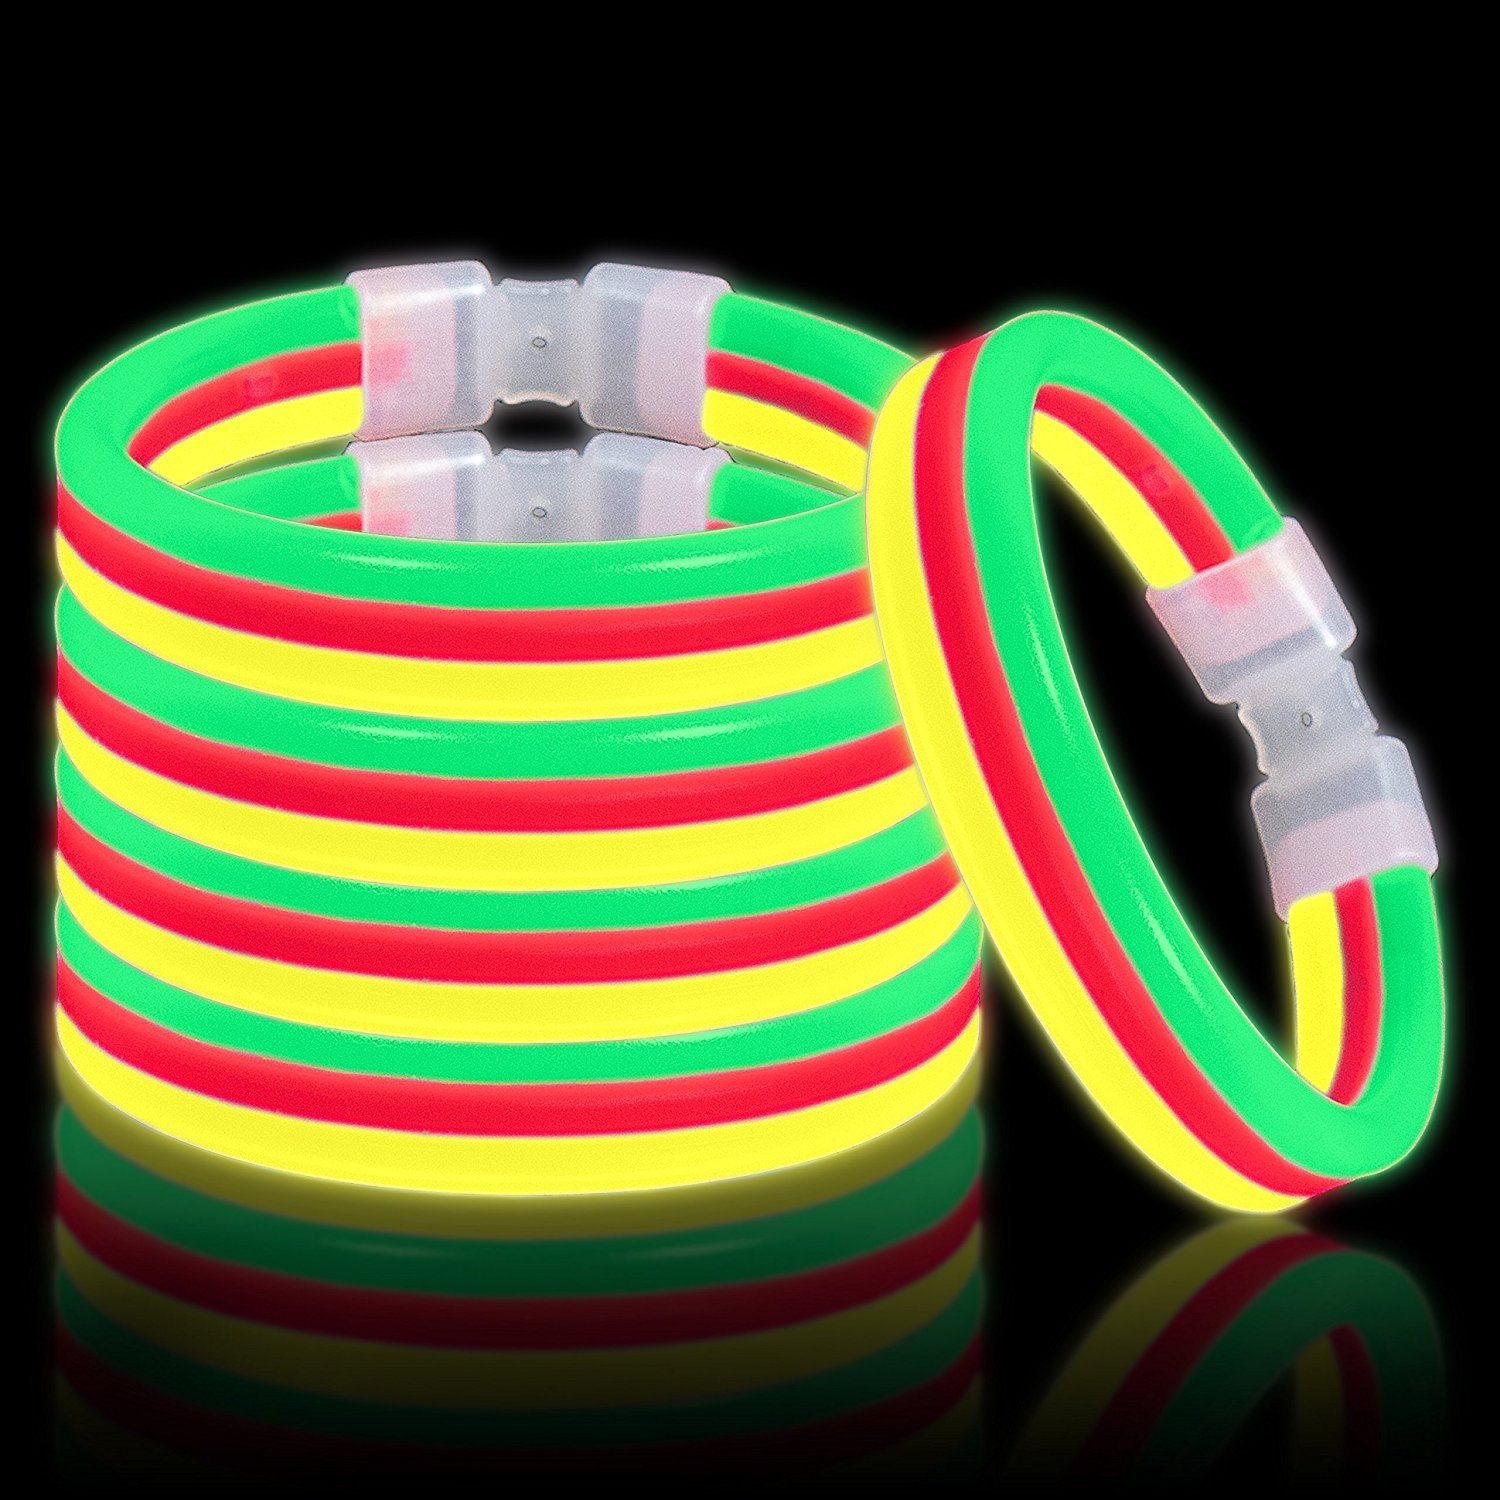 Lumistick Triple Thick Ultra Bright Festival Glow Stick Bracelets | Kid Safe Non Toxic Light Up Glowstick Party Pack | Available in Color Varieties | Glows up to 12 Hours Green Yellow Red 30